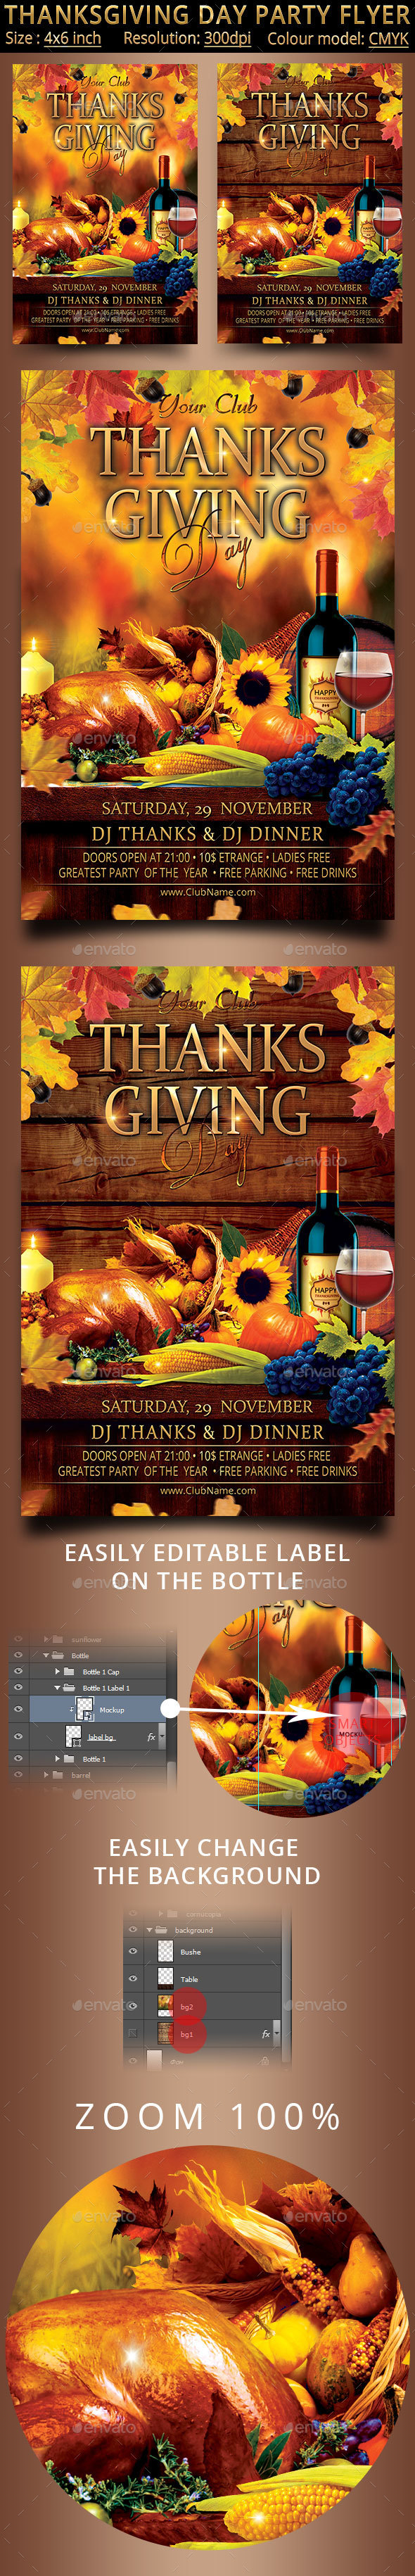 Thanksgiving Day Party Flyer